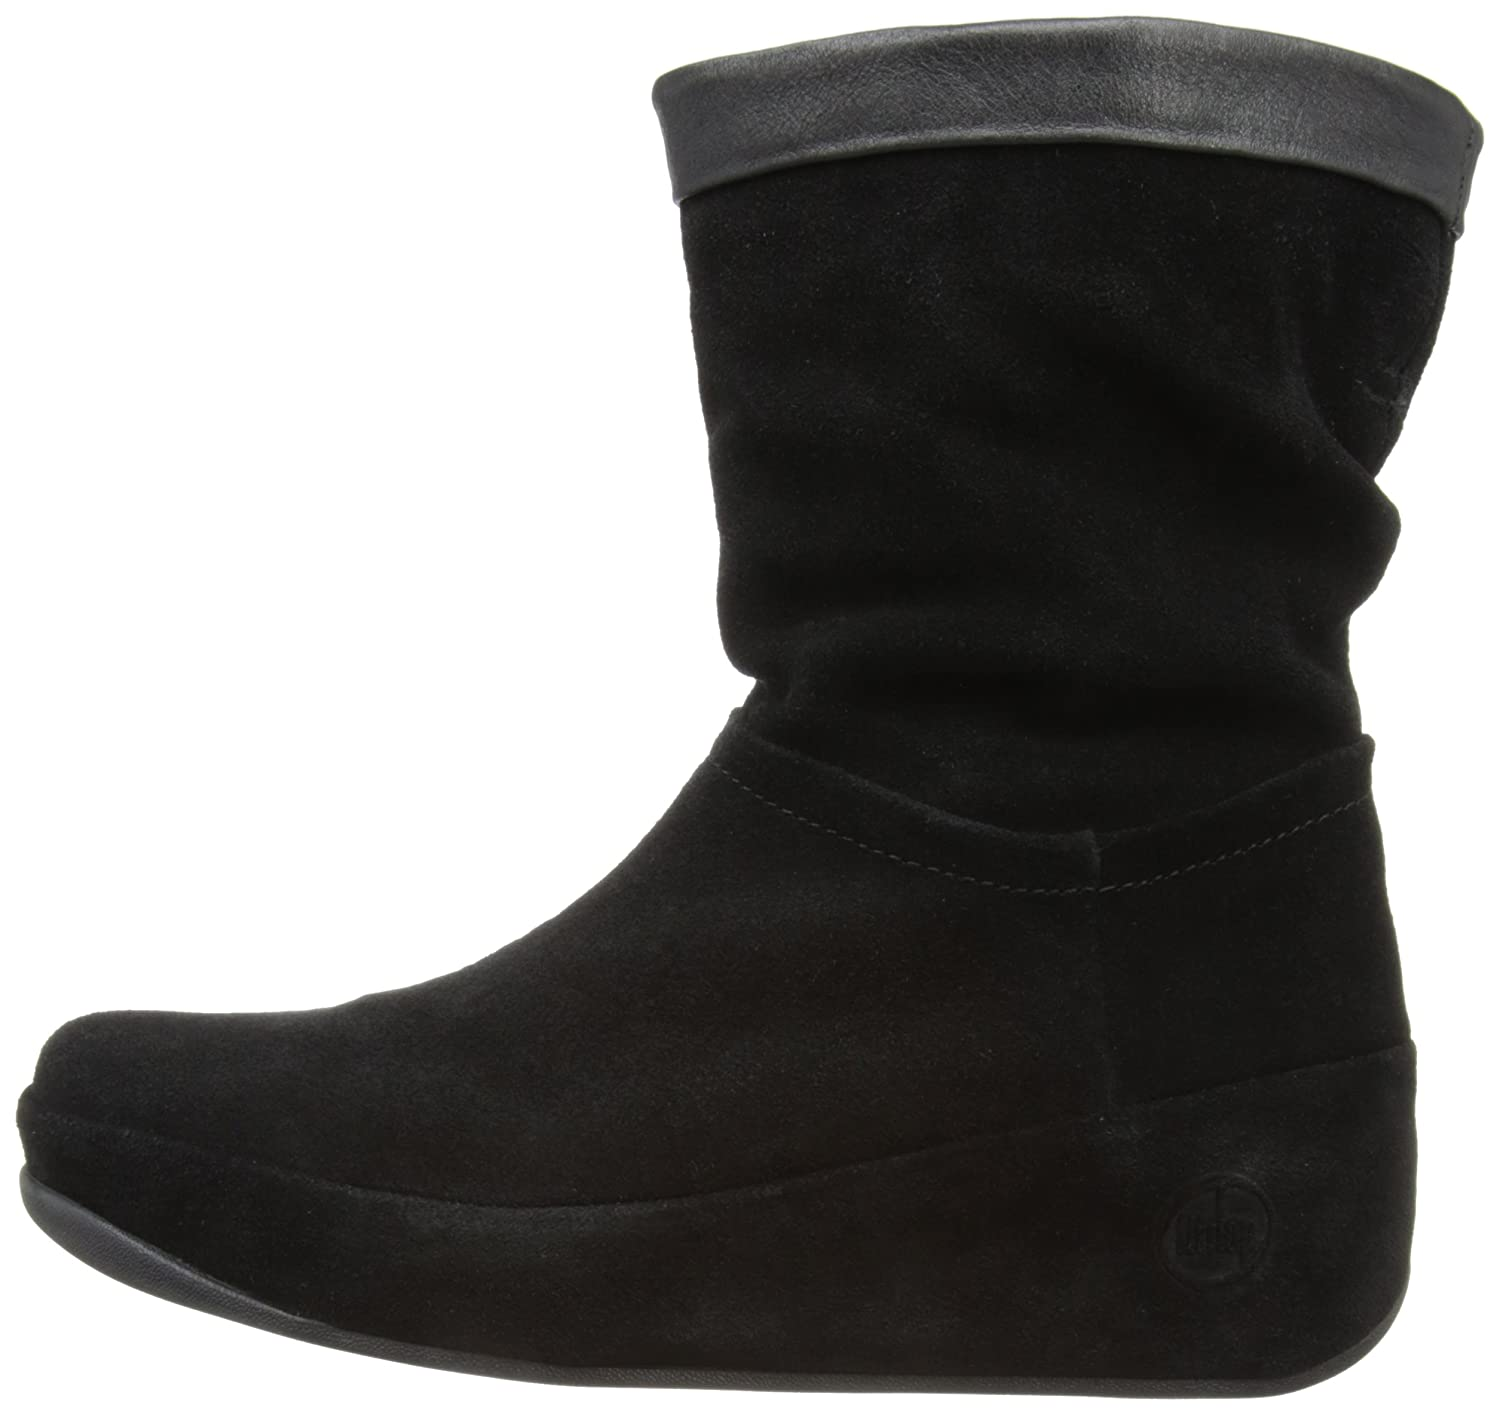 7cad87870 Fit Flop Women s Crush Suede Boot